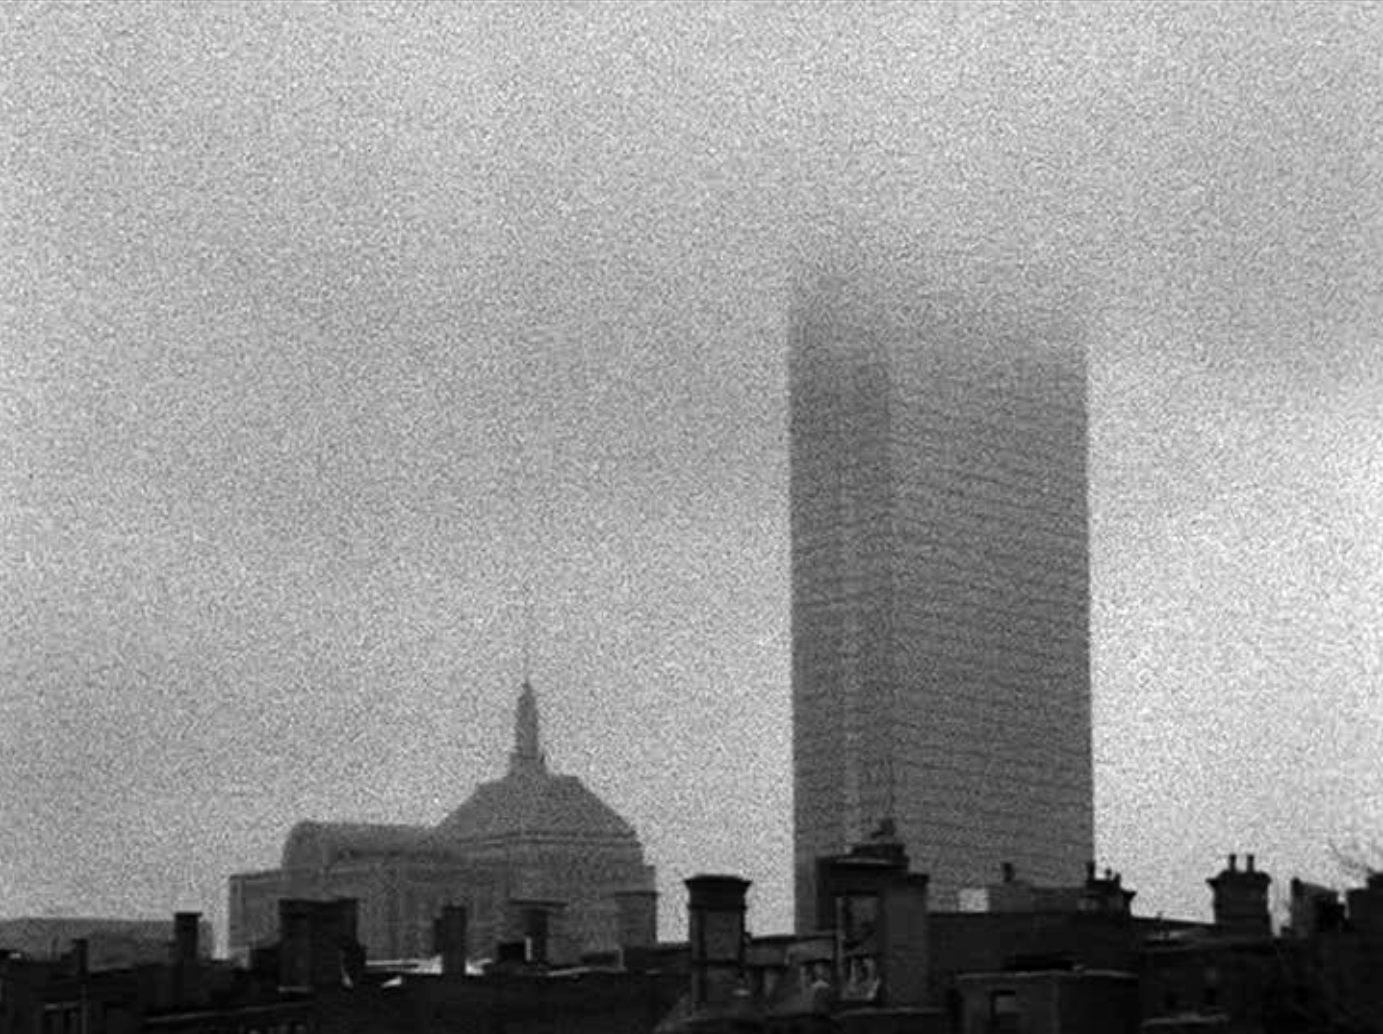 lost in the movies formerly the dancing image ode to boston my latest fandor video essay like my previous one is inspired by a new release to look back at an earlier film in this case the new release is la la